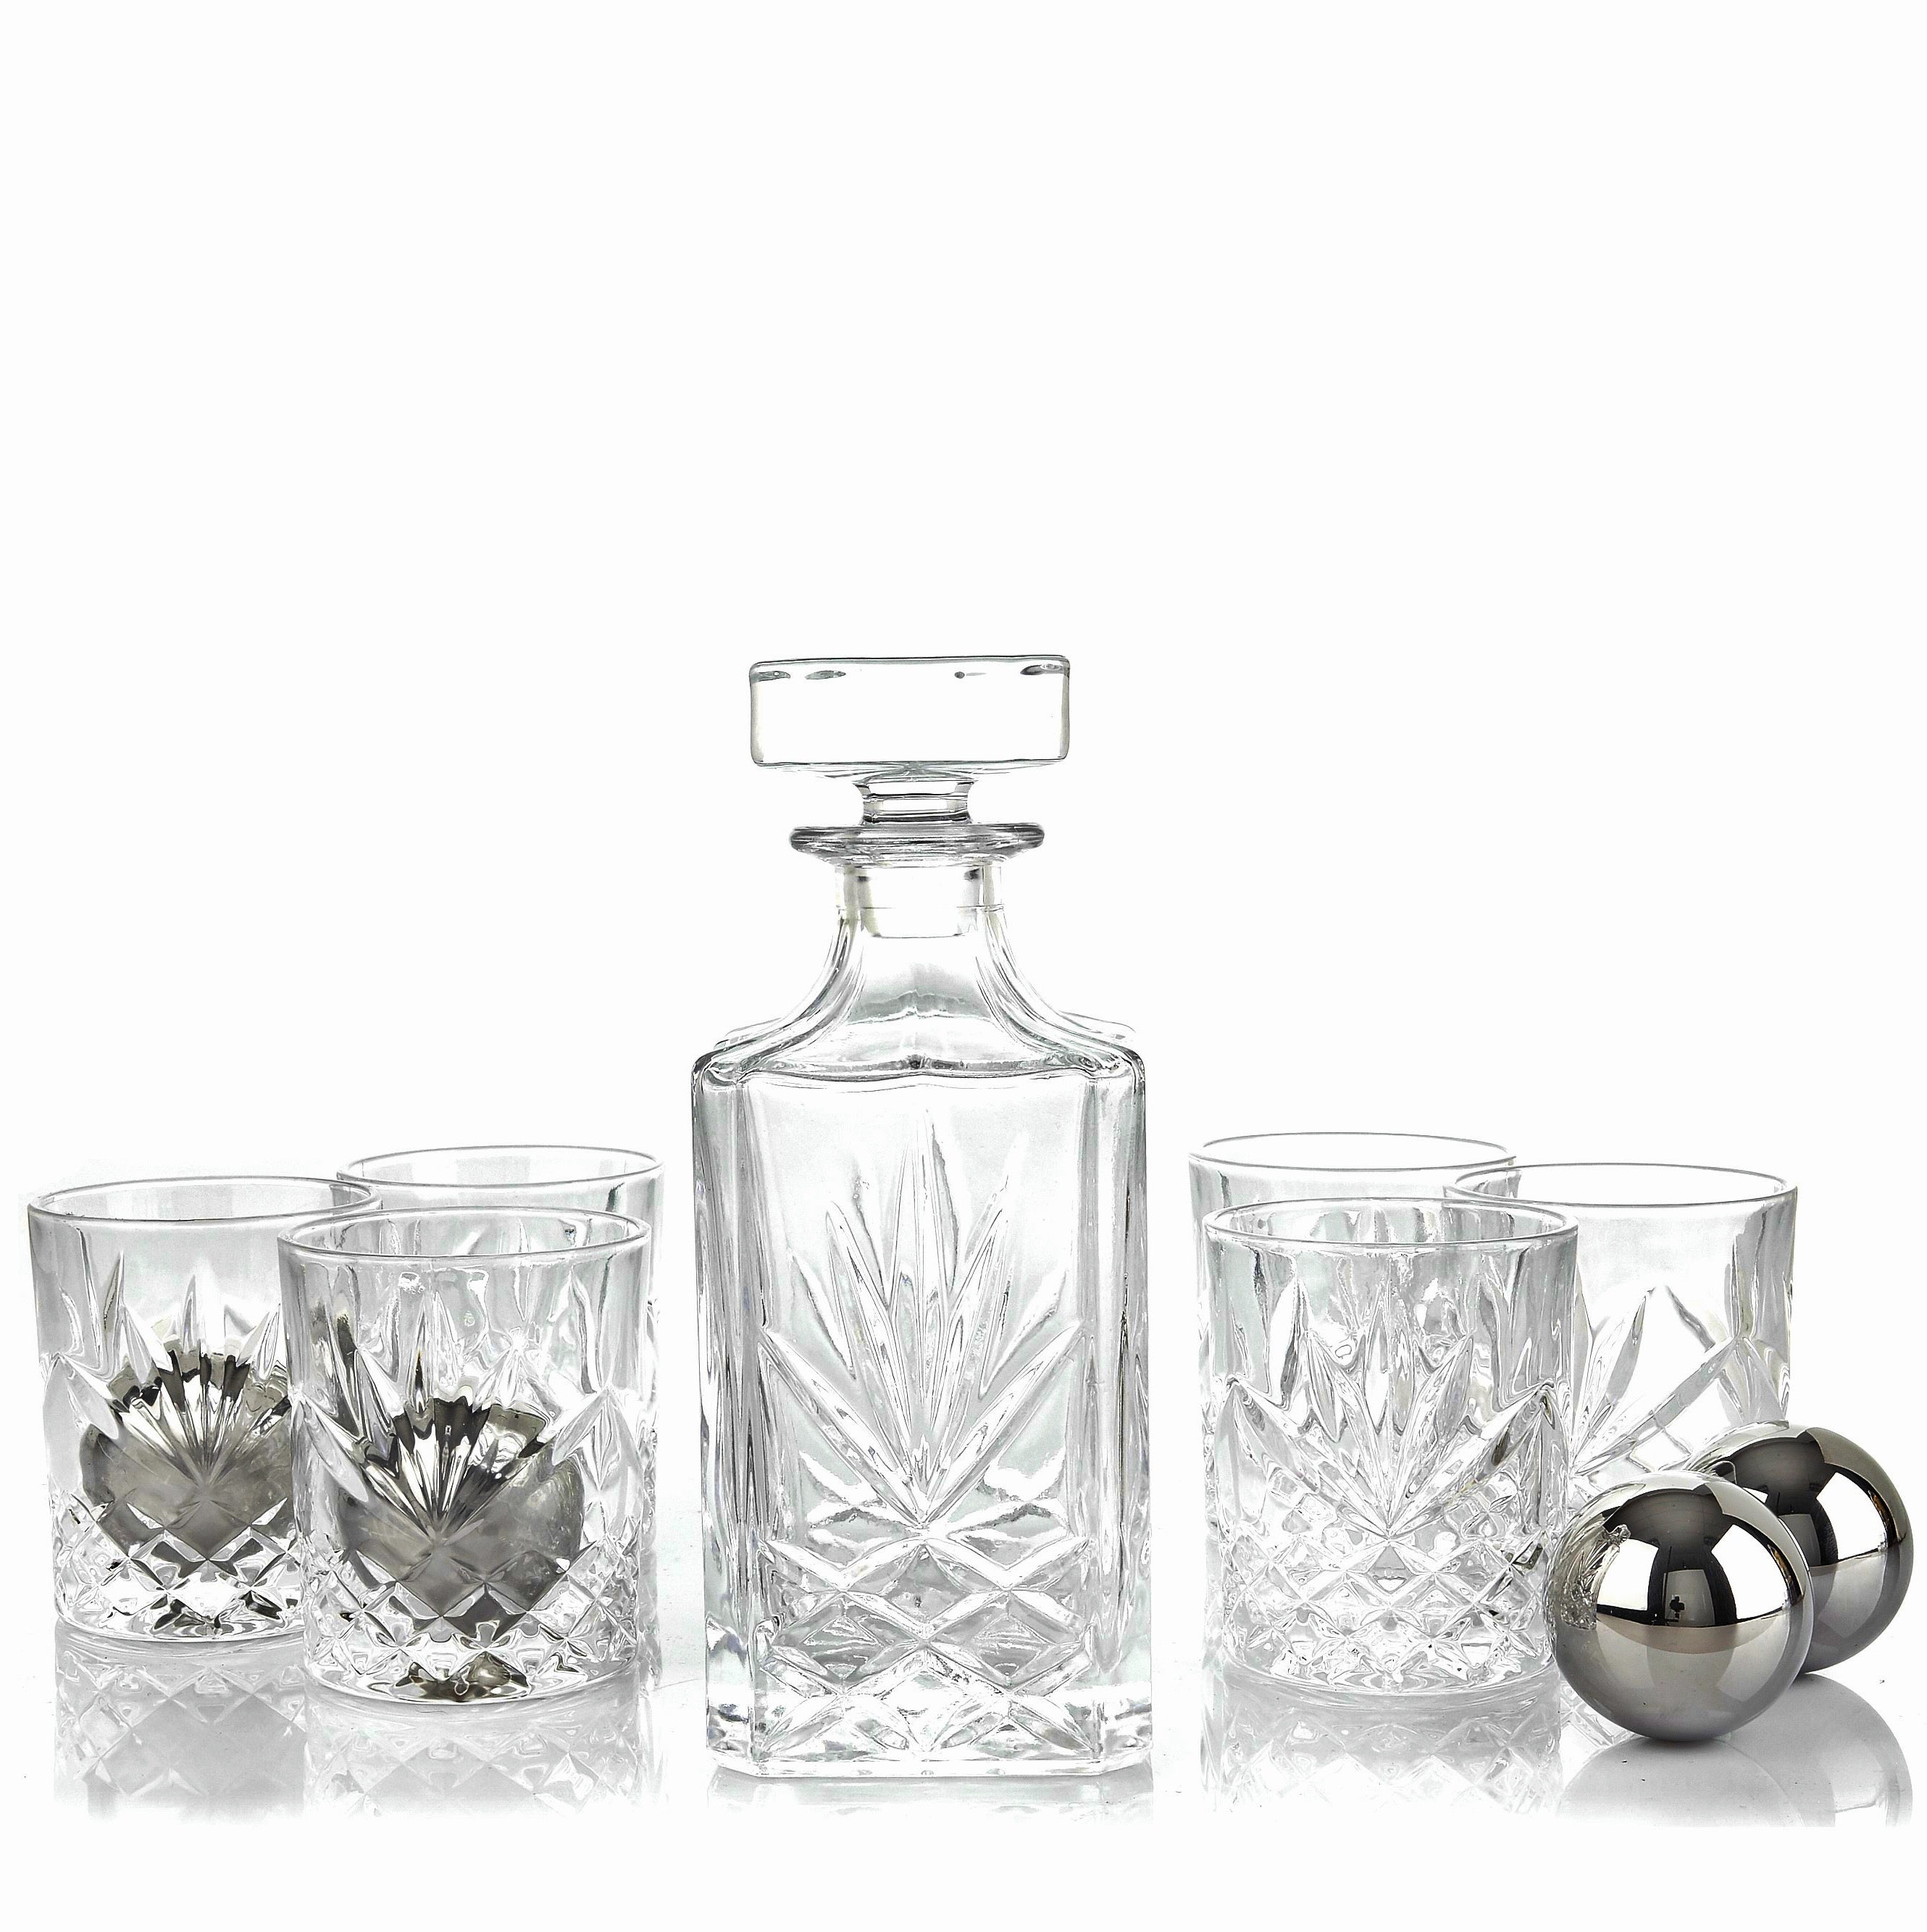 Nou Living Crystal Decanter and Glass Set - Classic